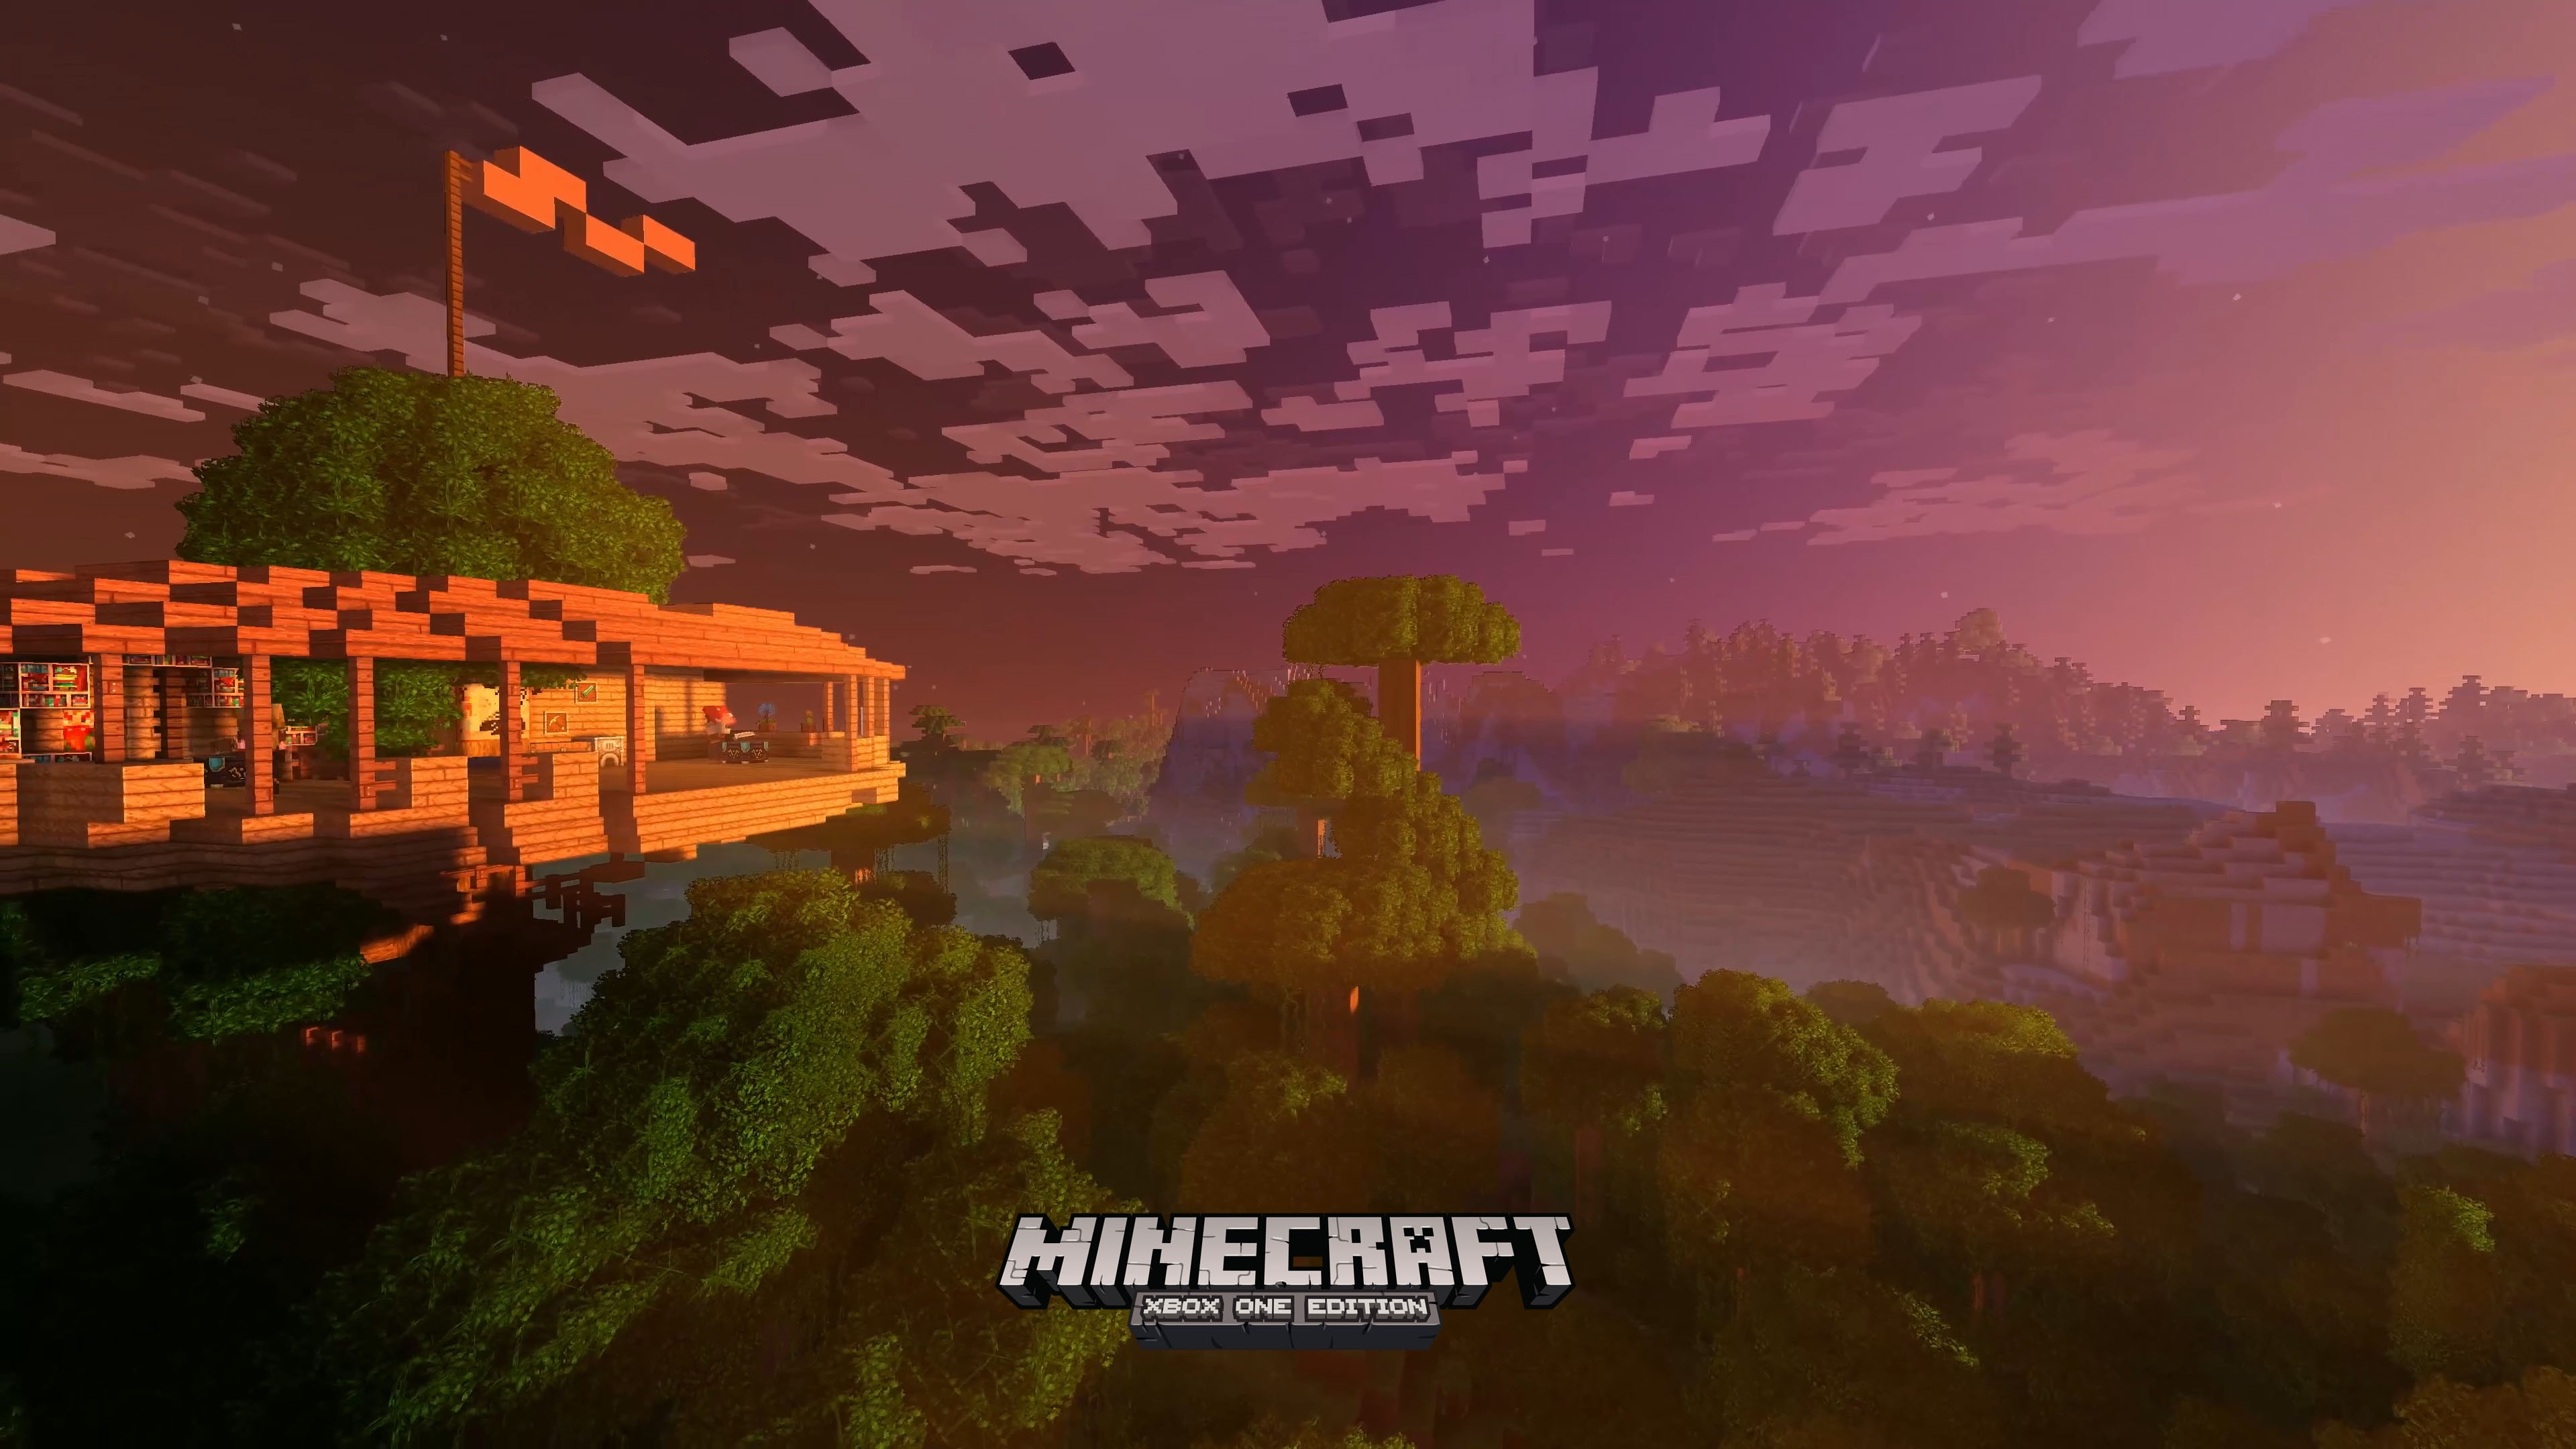 Must see Wallpaper Minecraft Mac - minecraft-4k-edition-3840x2160-e3-2017-xbox-one-x-screenshot-13975  Perfect Image Reference_45895.jpg